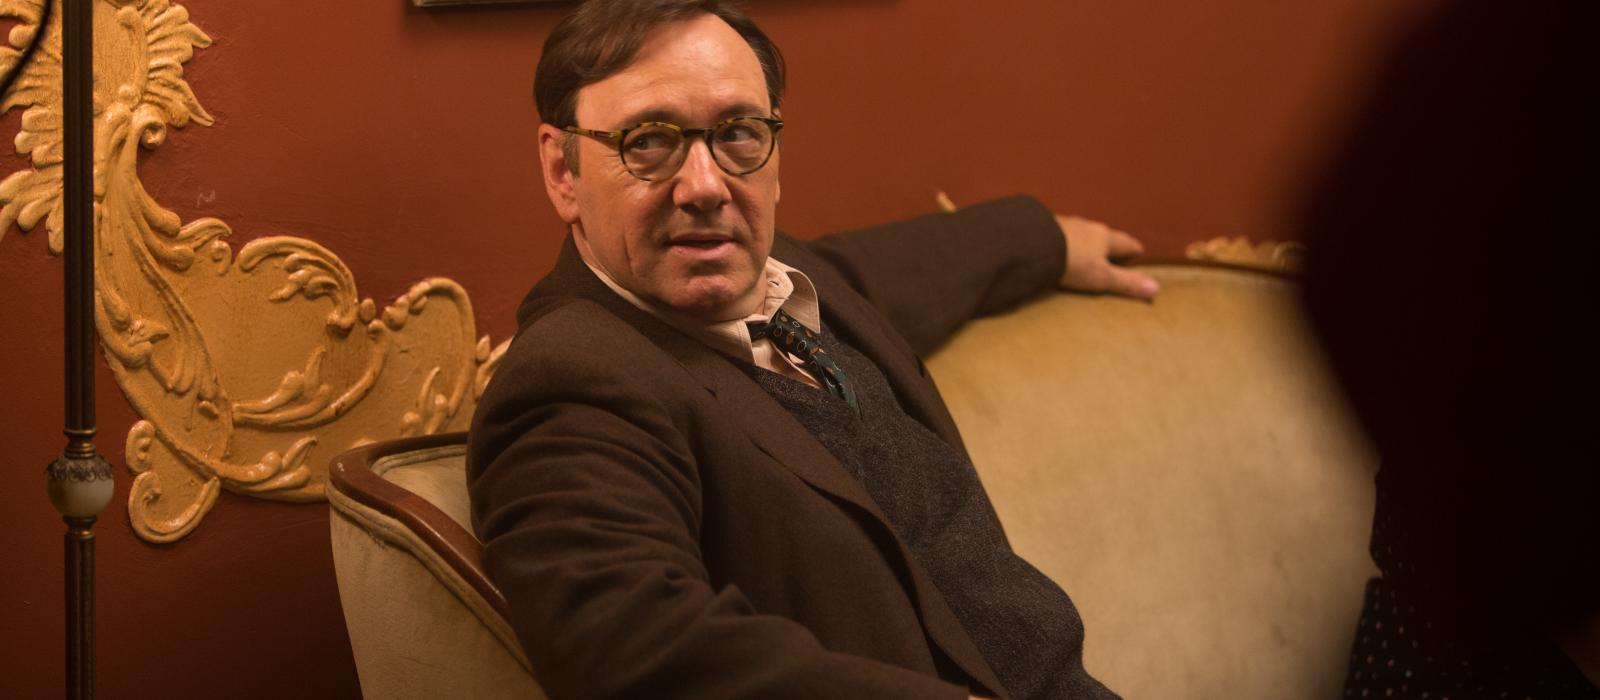 Kevin Spacey interpreta al profesor de JD Salinger.